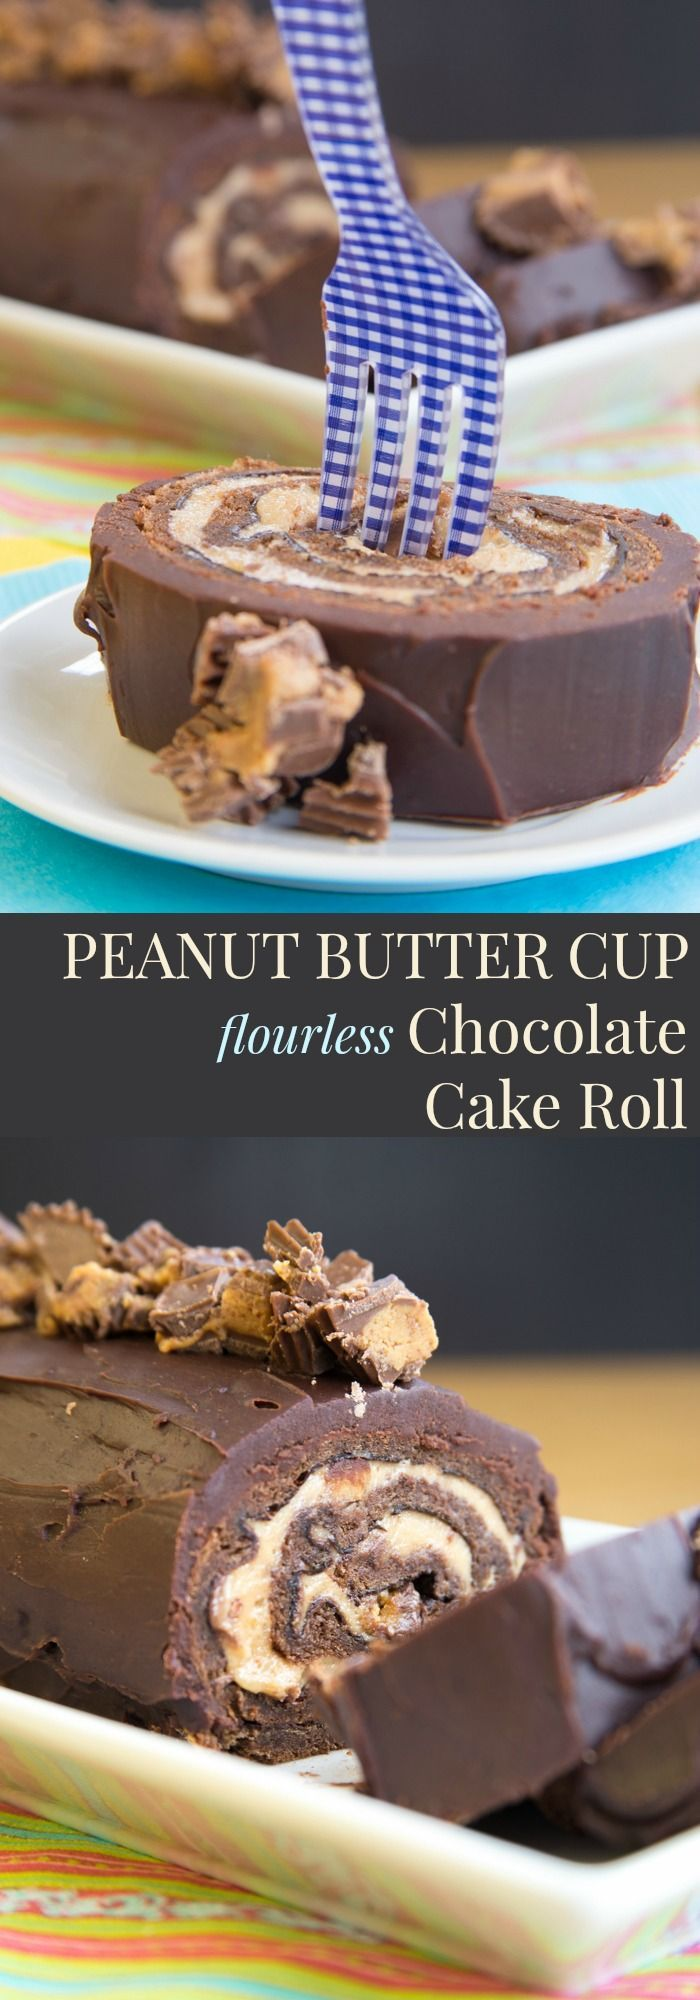 Peanut Butter Cup Flourless Chocolate Cake Roll